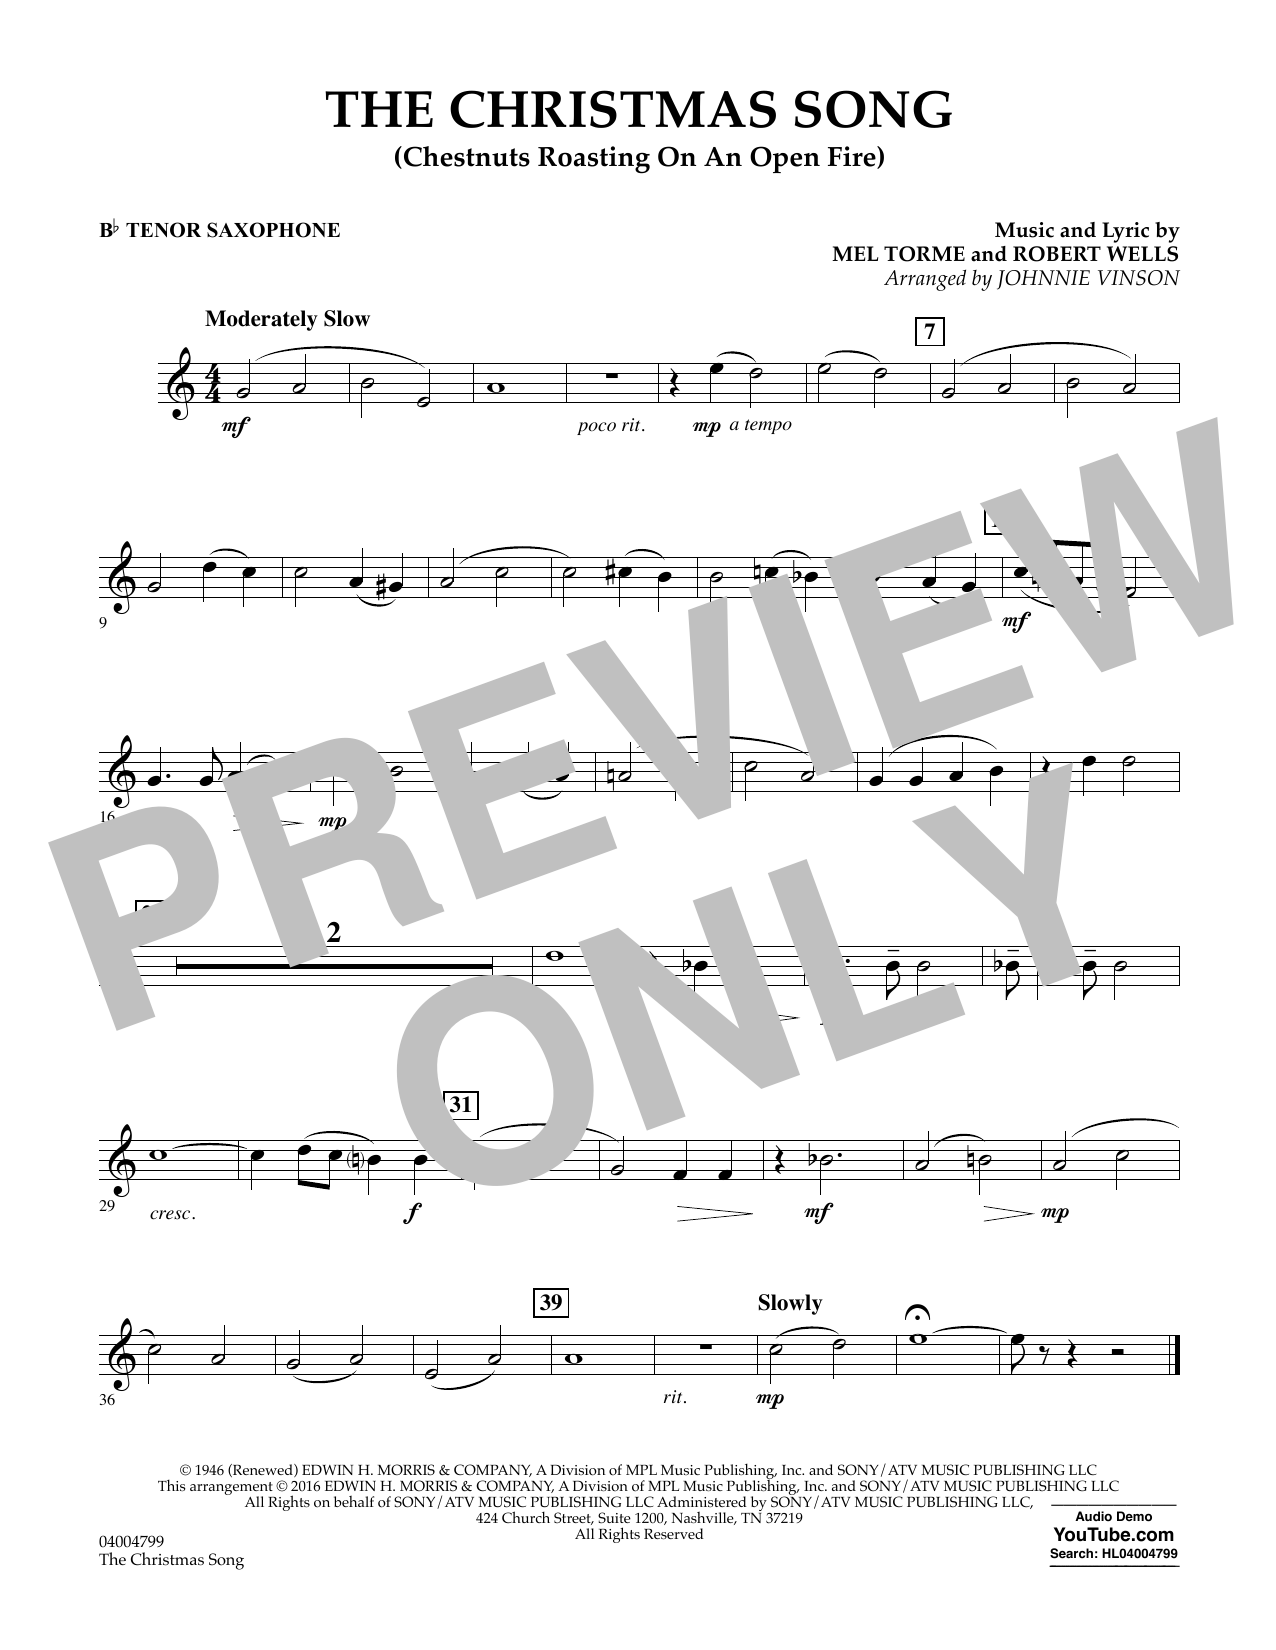 The Christmas Song (Chestnuts Roasting on an Open Fire) - Bb Tenor Saxophone